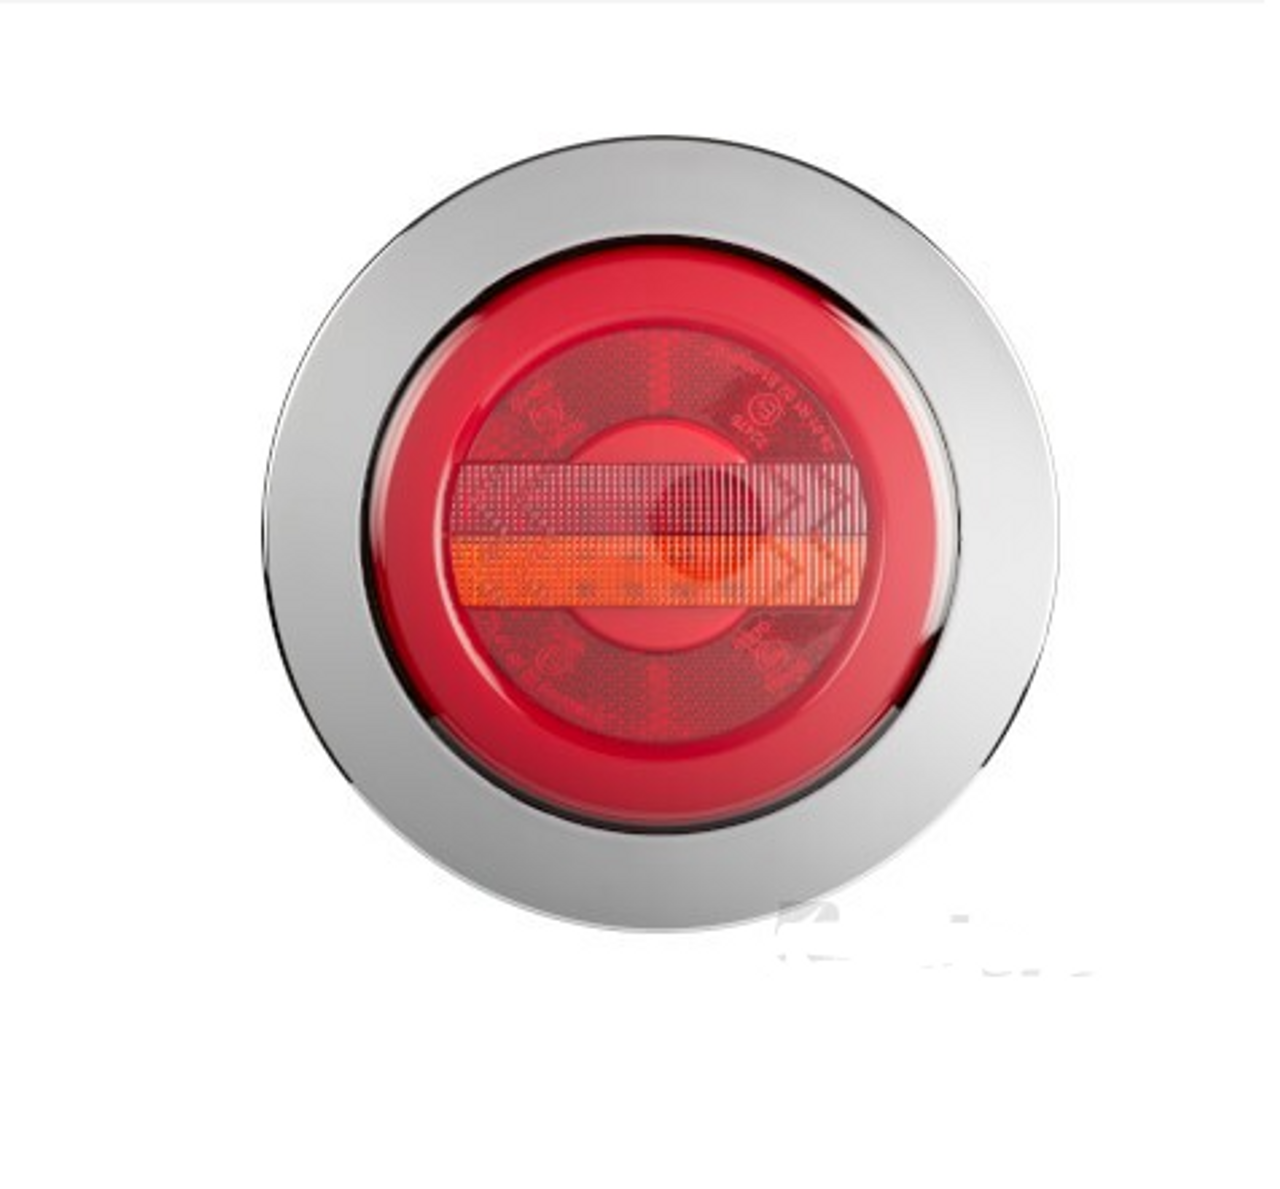 BR152ARRC - Stop Tail Indicator with Reflector. Round Light. Chrome Surround. Glow Tail Light. Recessed Mount. Multi-Volt. Single Pack. RoadVision. Ultimate LED.